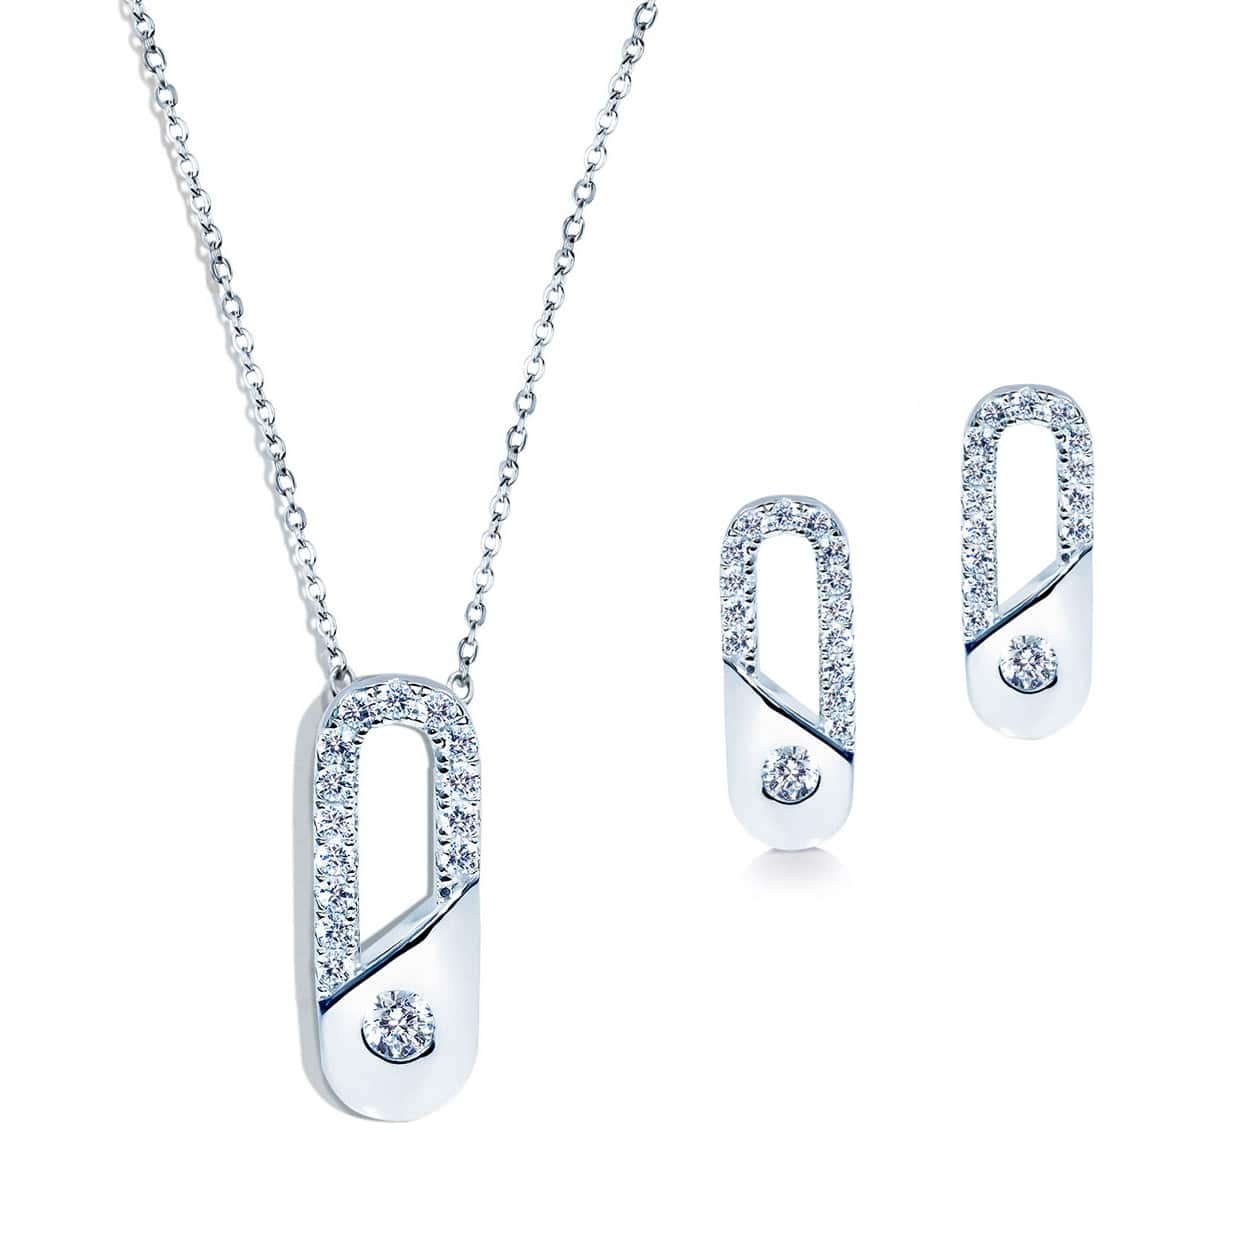 Abelstedt A Silver Gift Set